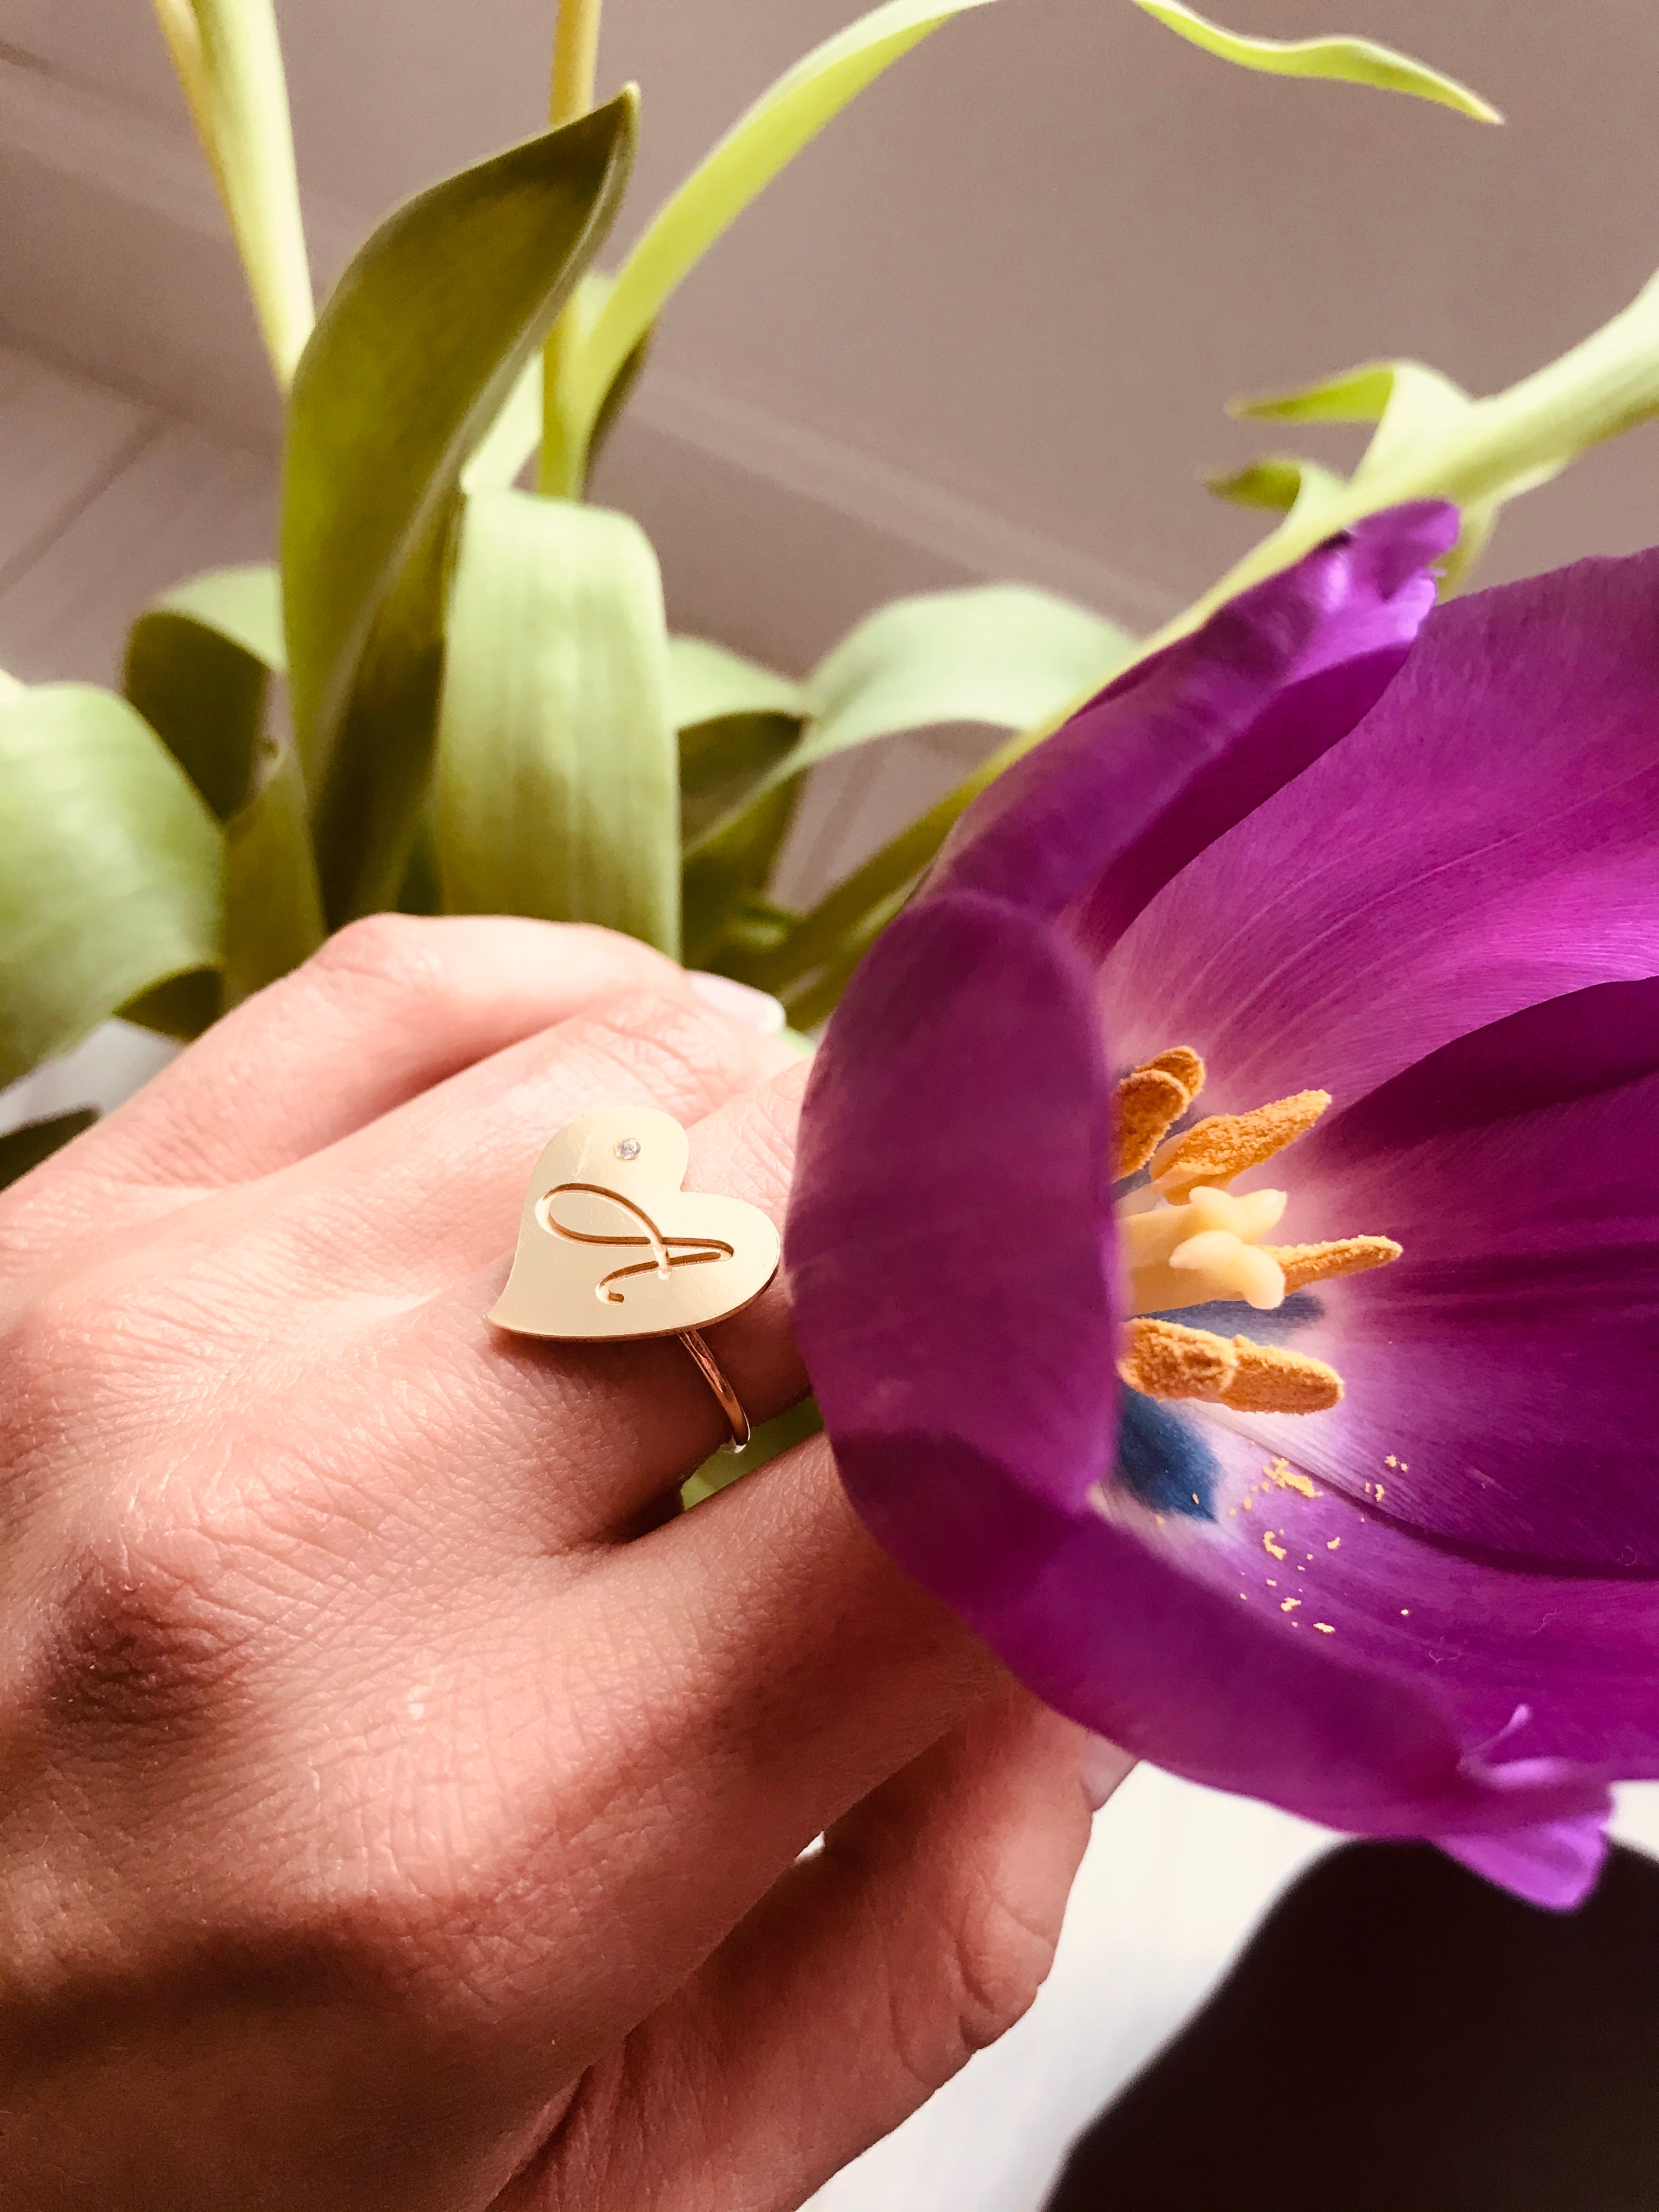 MON COEUR ring - BYVELA designer jewellery in silver and gold